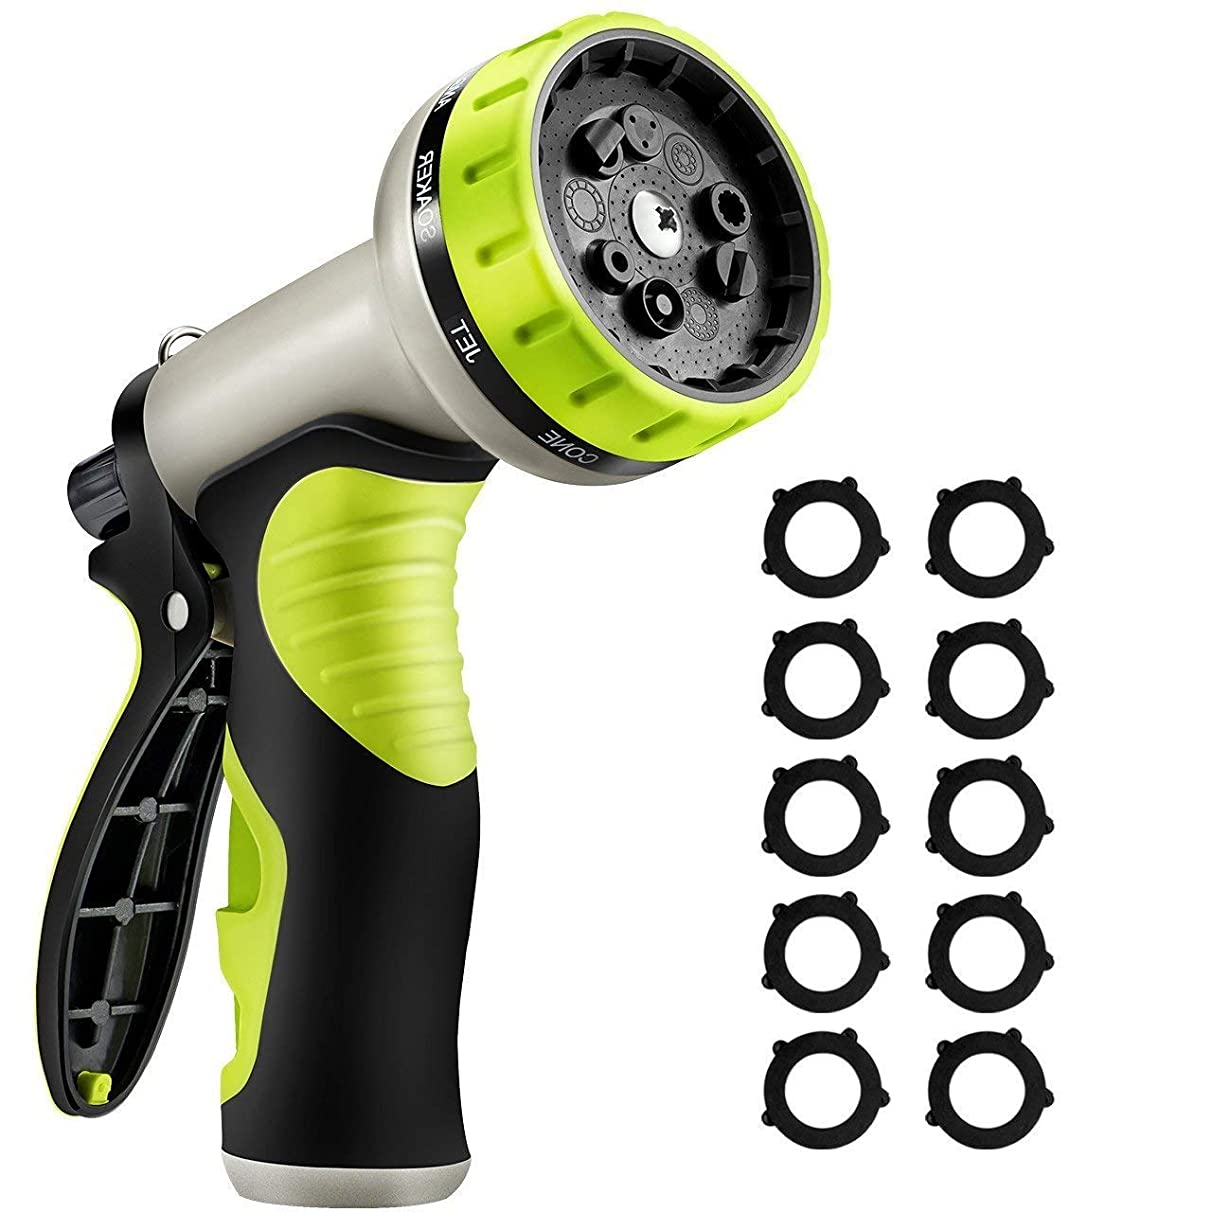 VicTsing Upgraded Version Garden Hose Nozzle,9 Patterns Heavy-Duty Spray Nozzle with 10 Washers,Thumb Control and Slip Resistant TPR Cover for Watering Plants,Washing Cars,and Showering Pets-Green